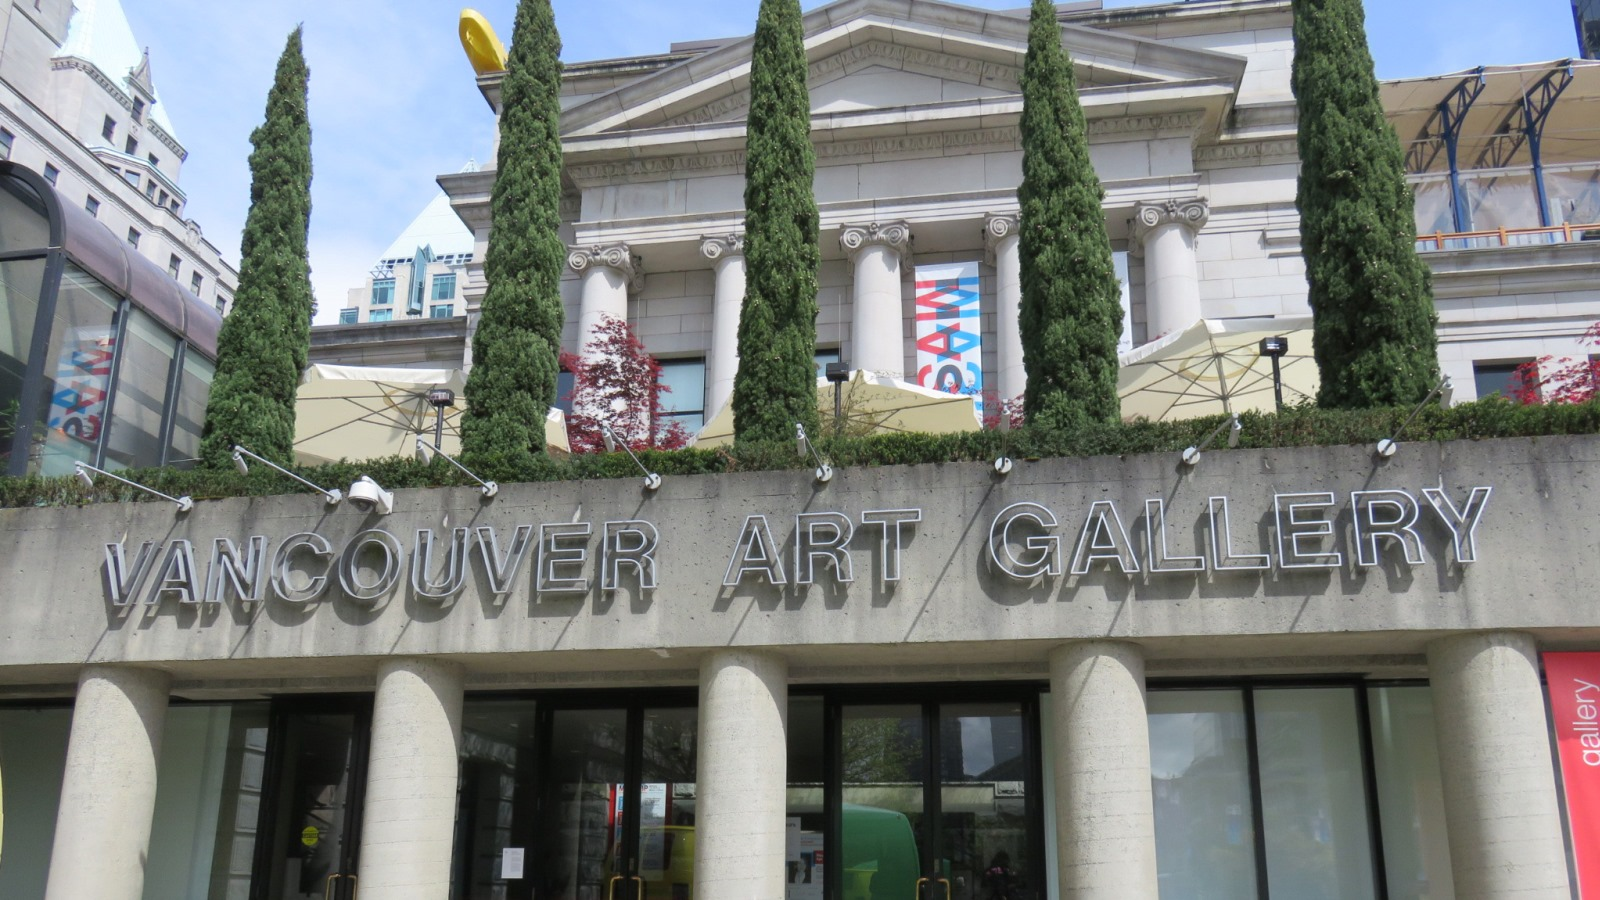 Things to Do in Vancouver - Vancouver Art Gallery